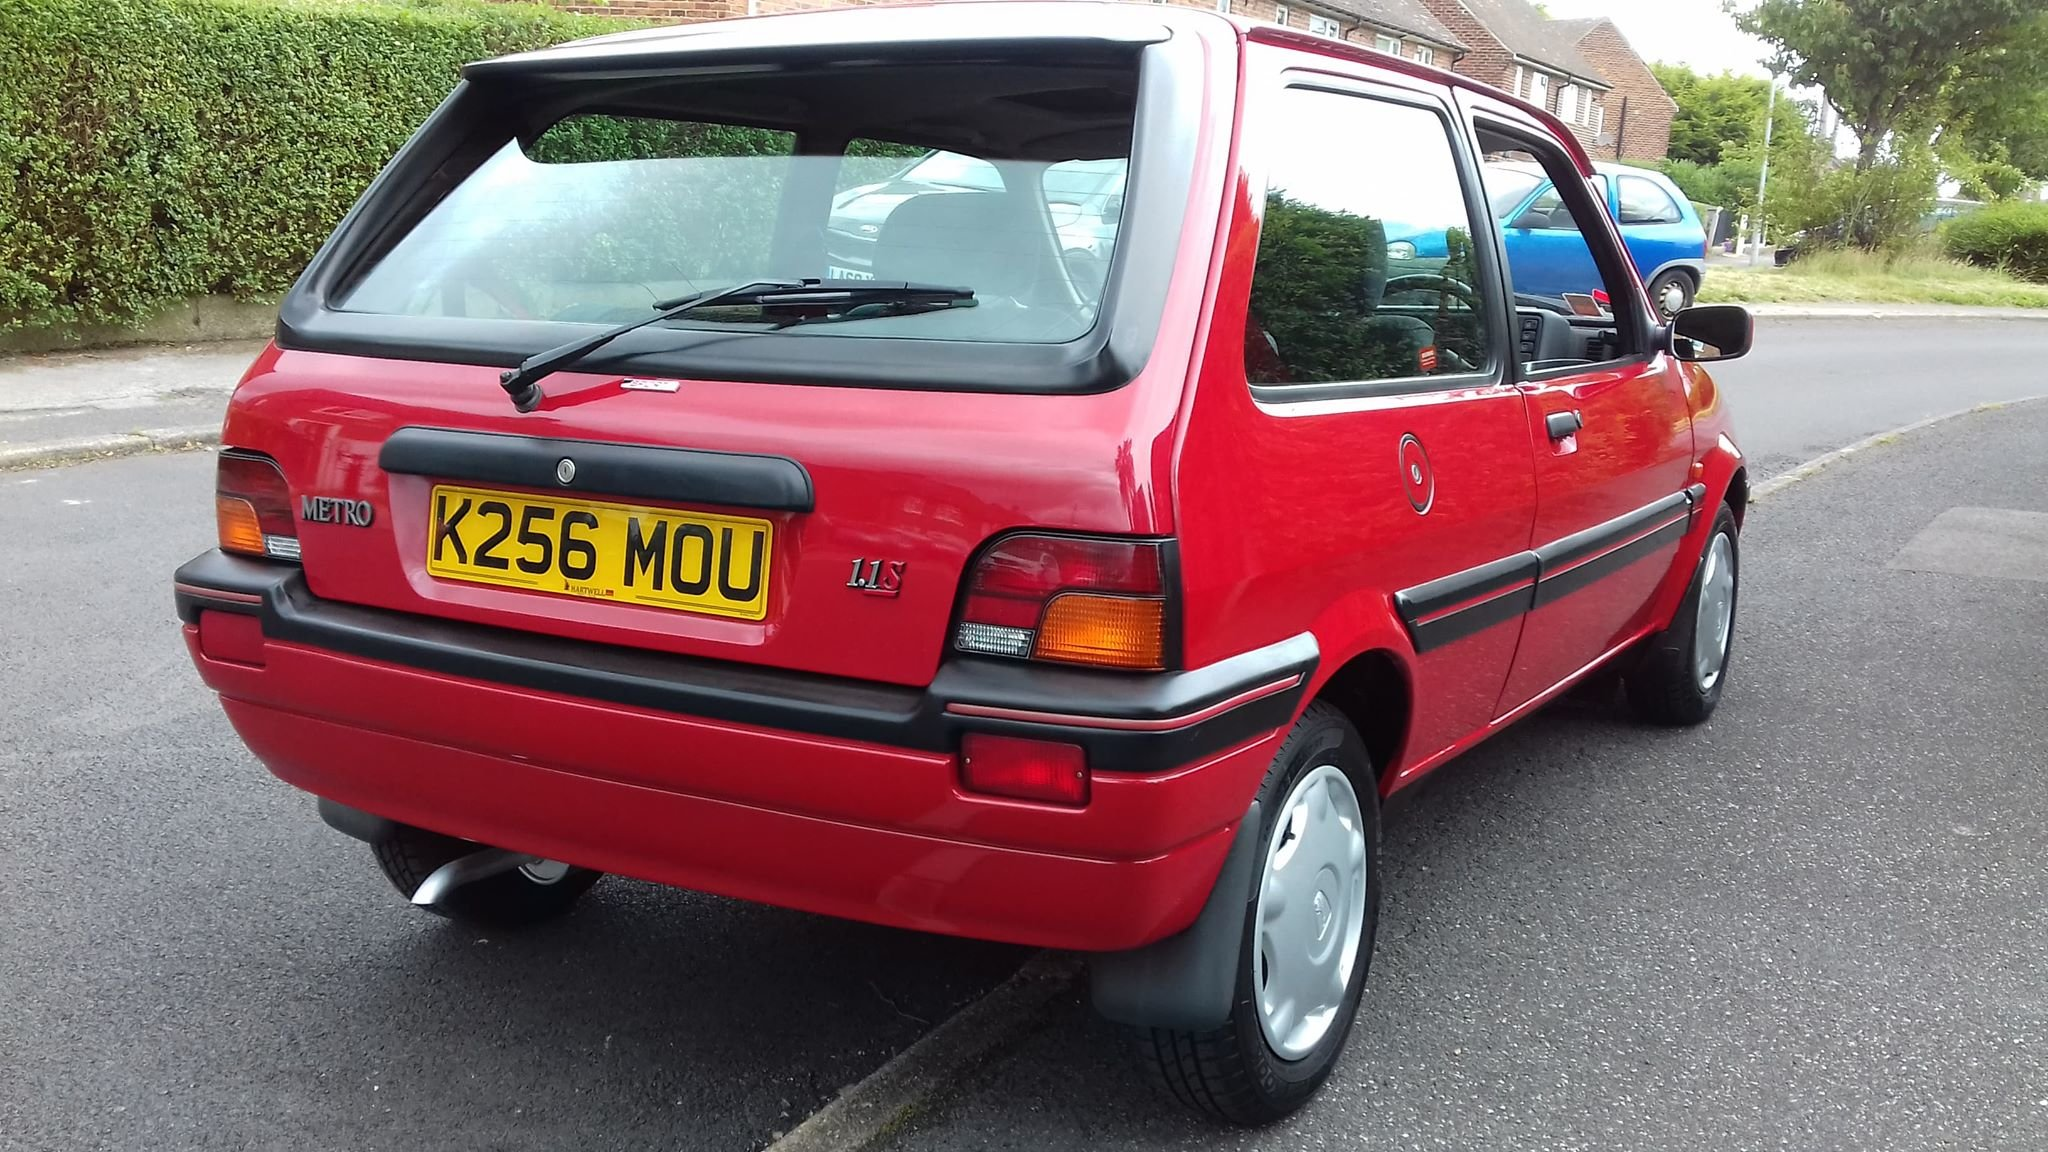 1992 Austin/rover metro 1.1 sport SOLD (picture 2 of 6)